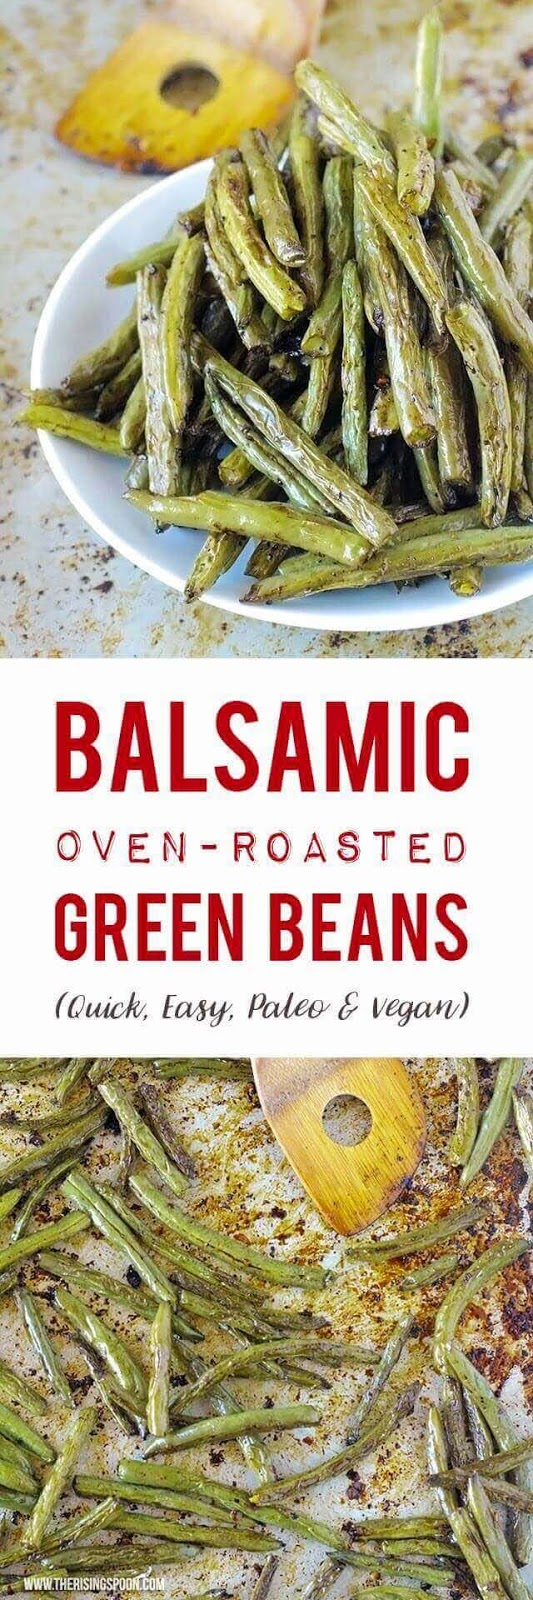 Fresh green beans tossed with cooking oil, seasonings and balsamic vinegar then quickly roasted in the oven until tender, slightly caramelized and crispy around the edges. These roasted green beans are elegant enough to serve at a holiday gathering and easy enough to whip together for a weeknight supper. {vegan, paleo, grain-free, gluten-free}